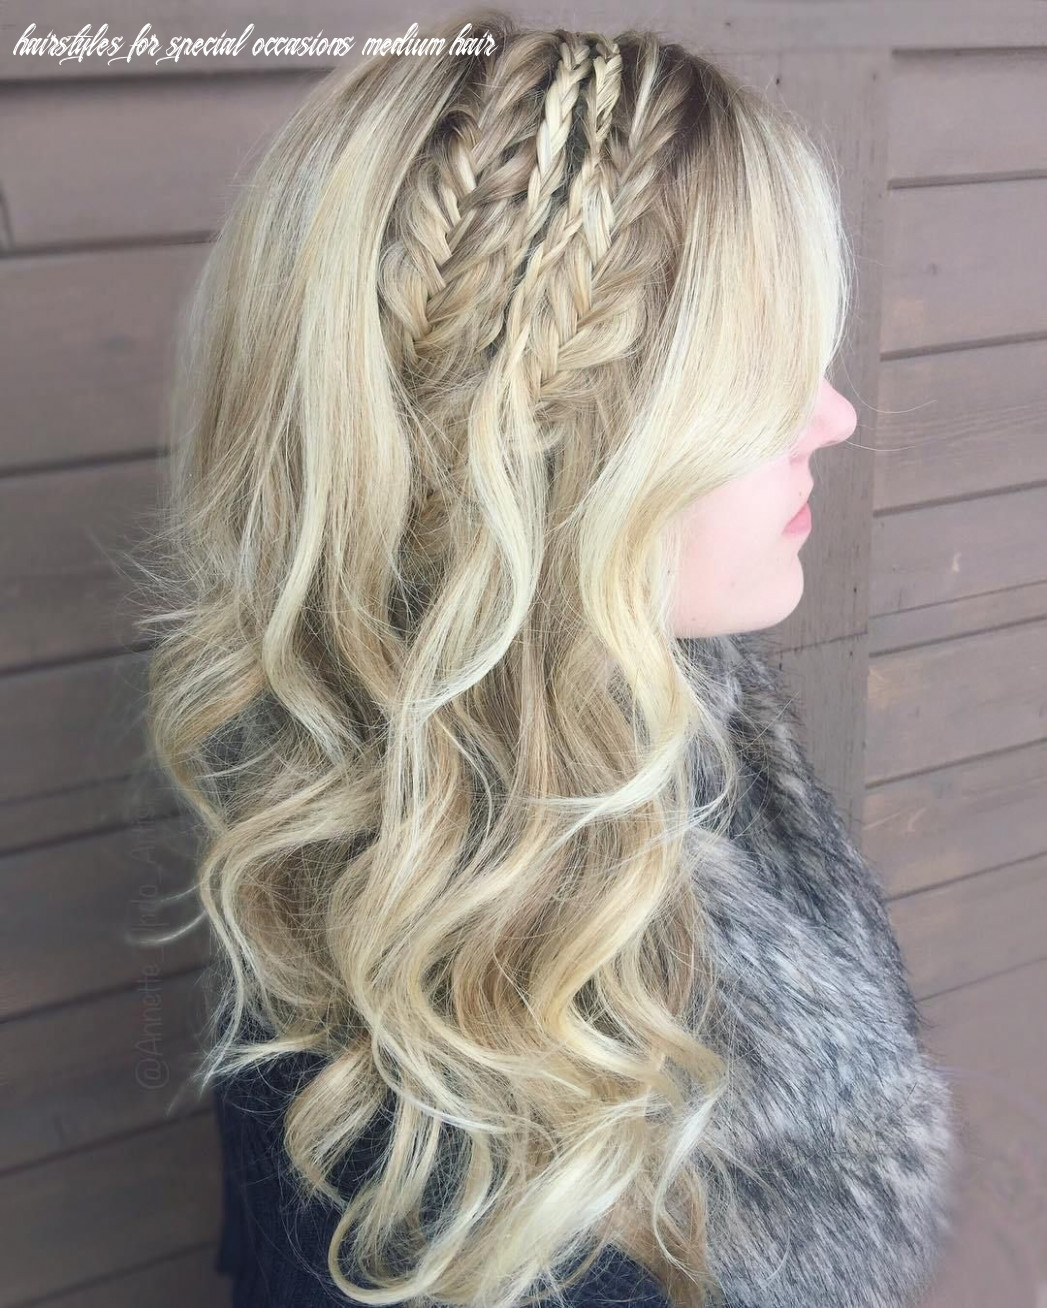 11 special occasion hairstyles | long blonde hair, special